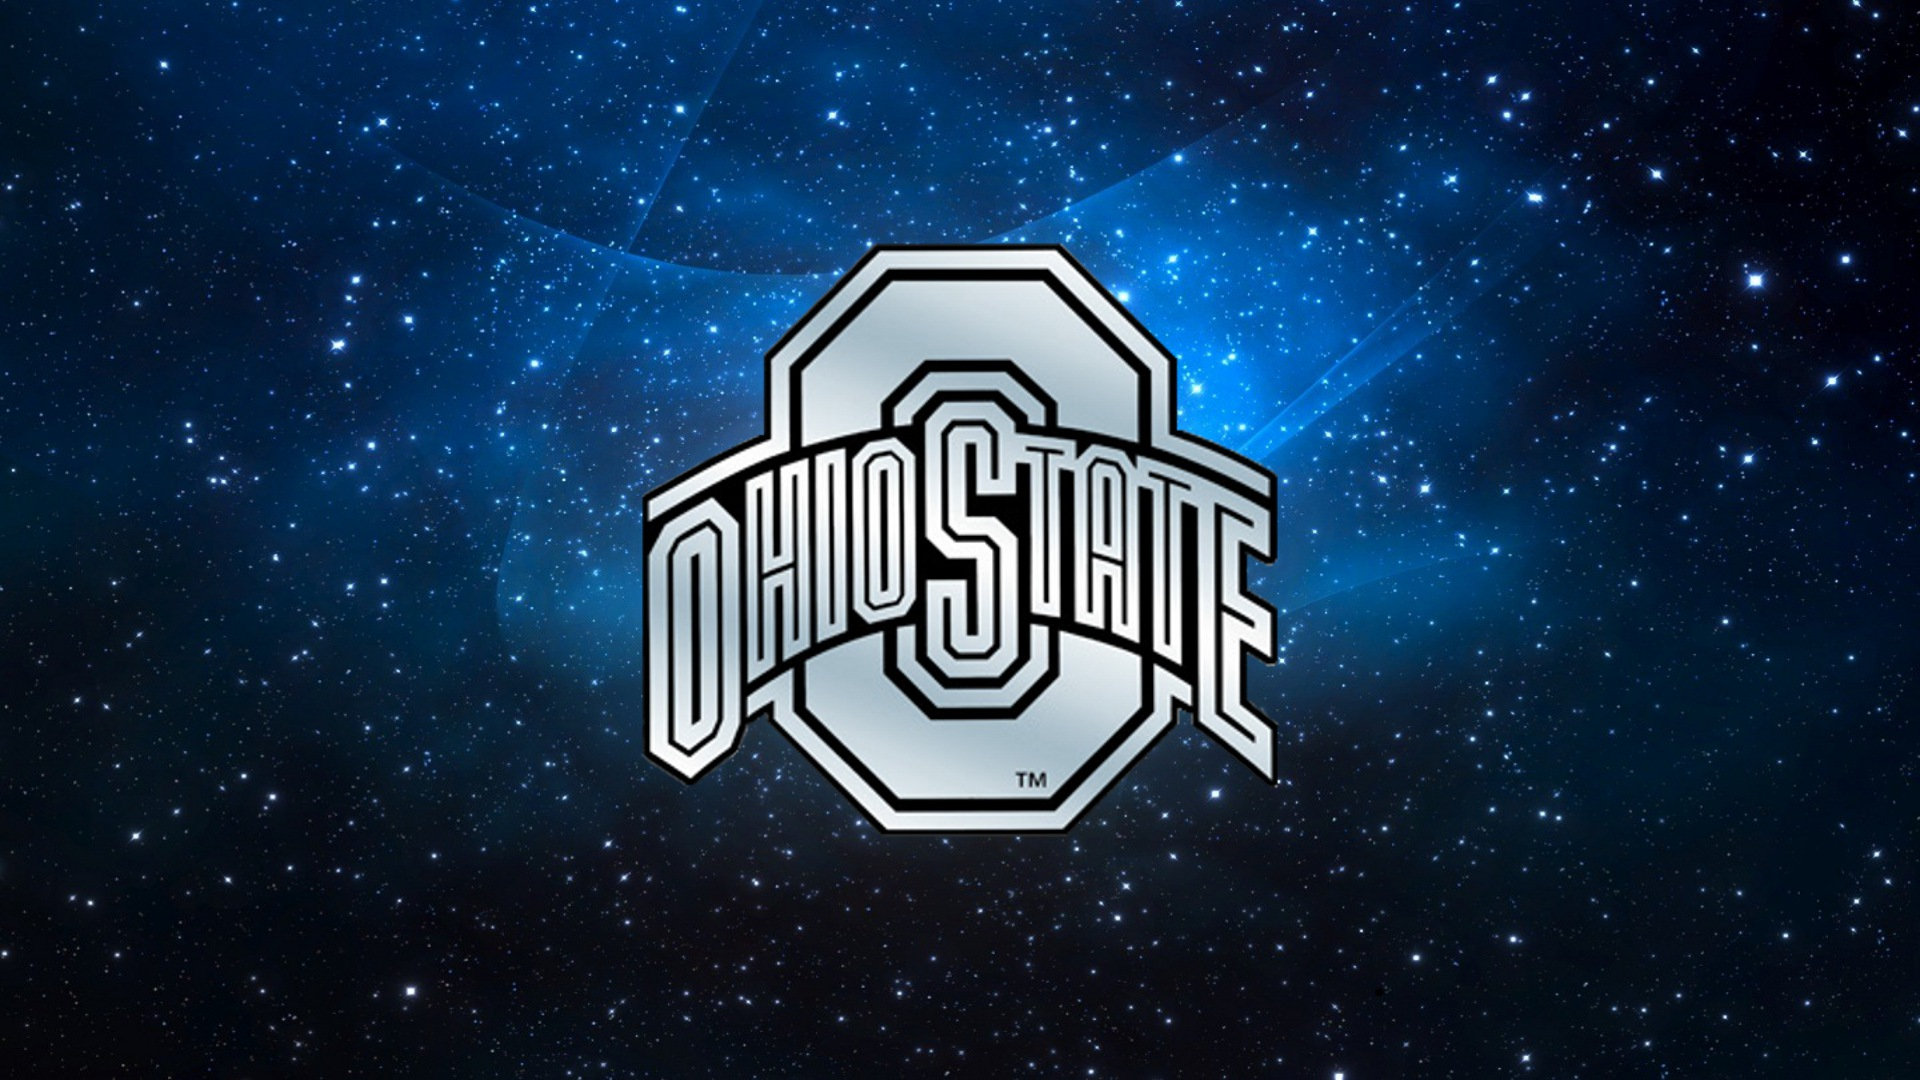 OSU Desktop Wallpaper 129   Ohio State Football Wallpaper 28971587 1920x1080